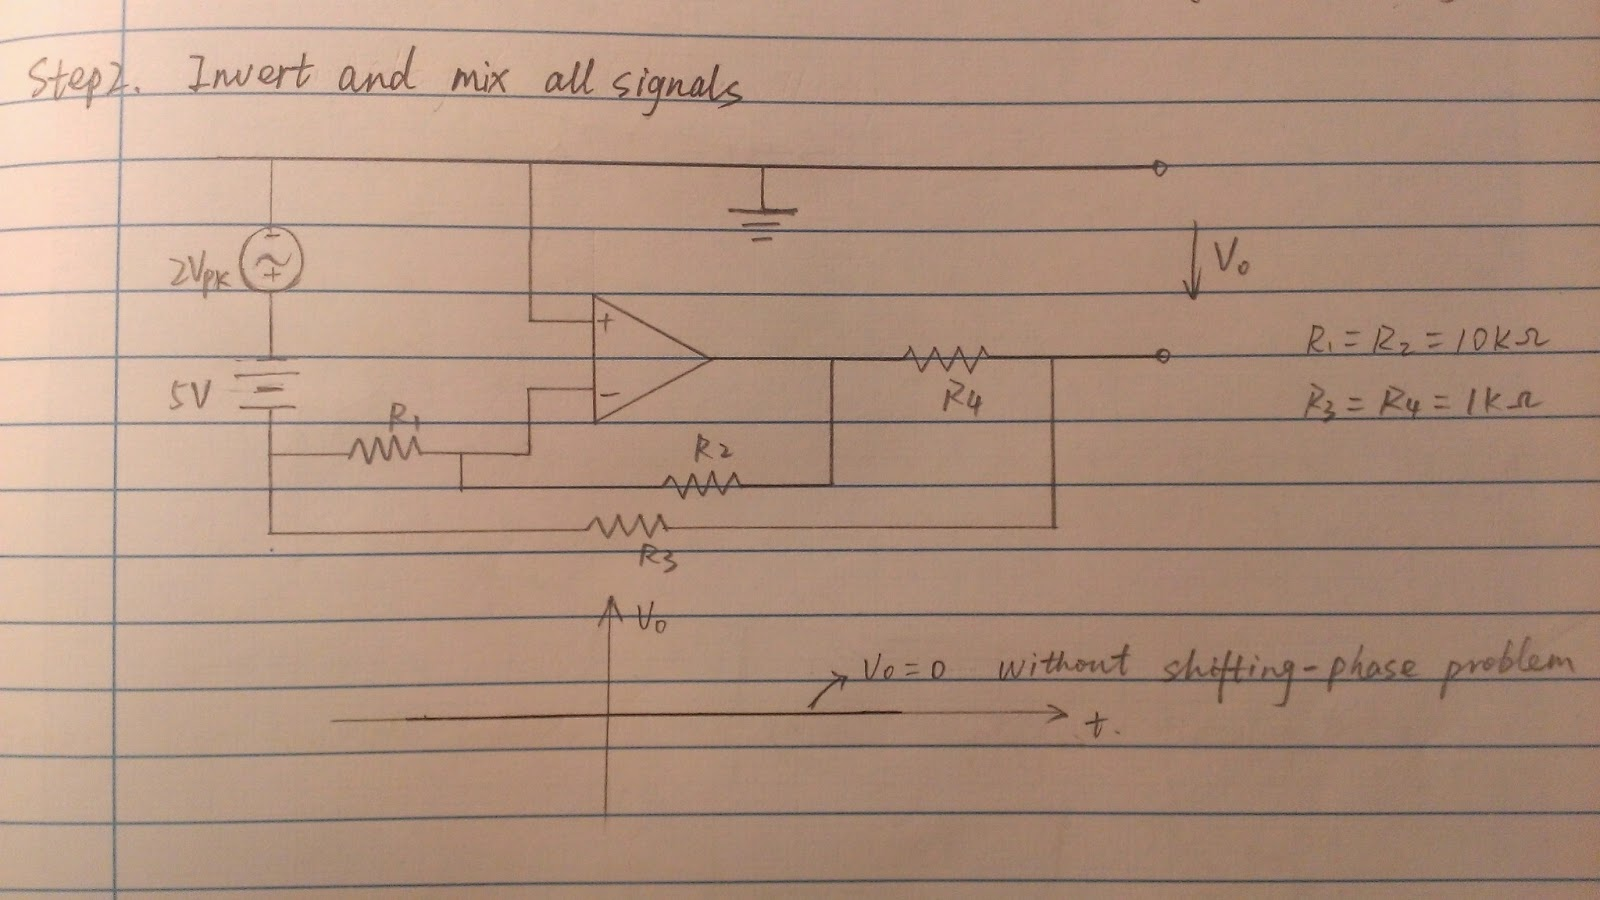 Regulated Linear Dc Power Supply Single Polarity By Ic Lm741 This Step Is To Mix The Original Signal From Source And Inverting Processed Operational Amplifier